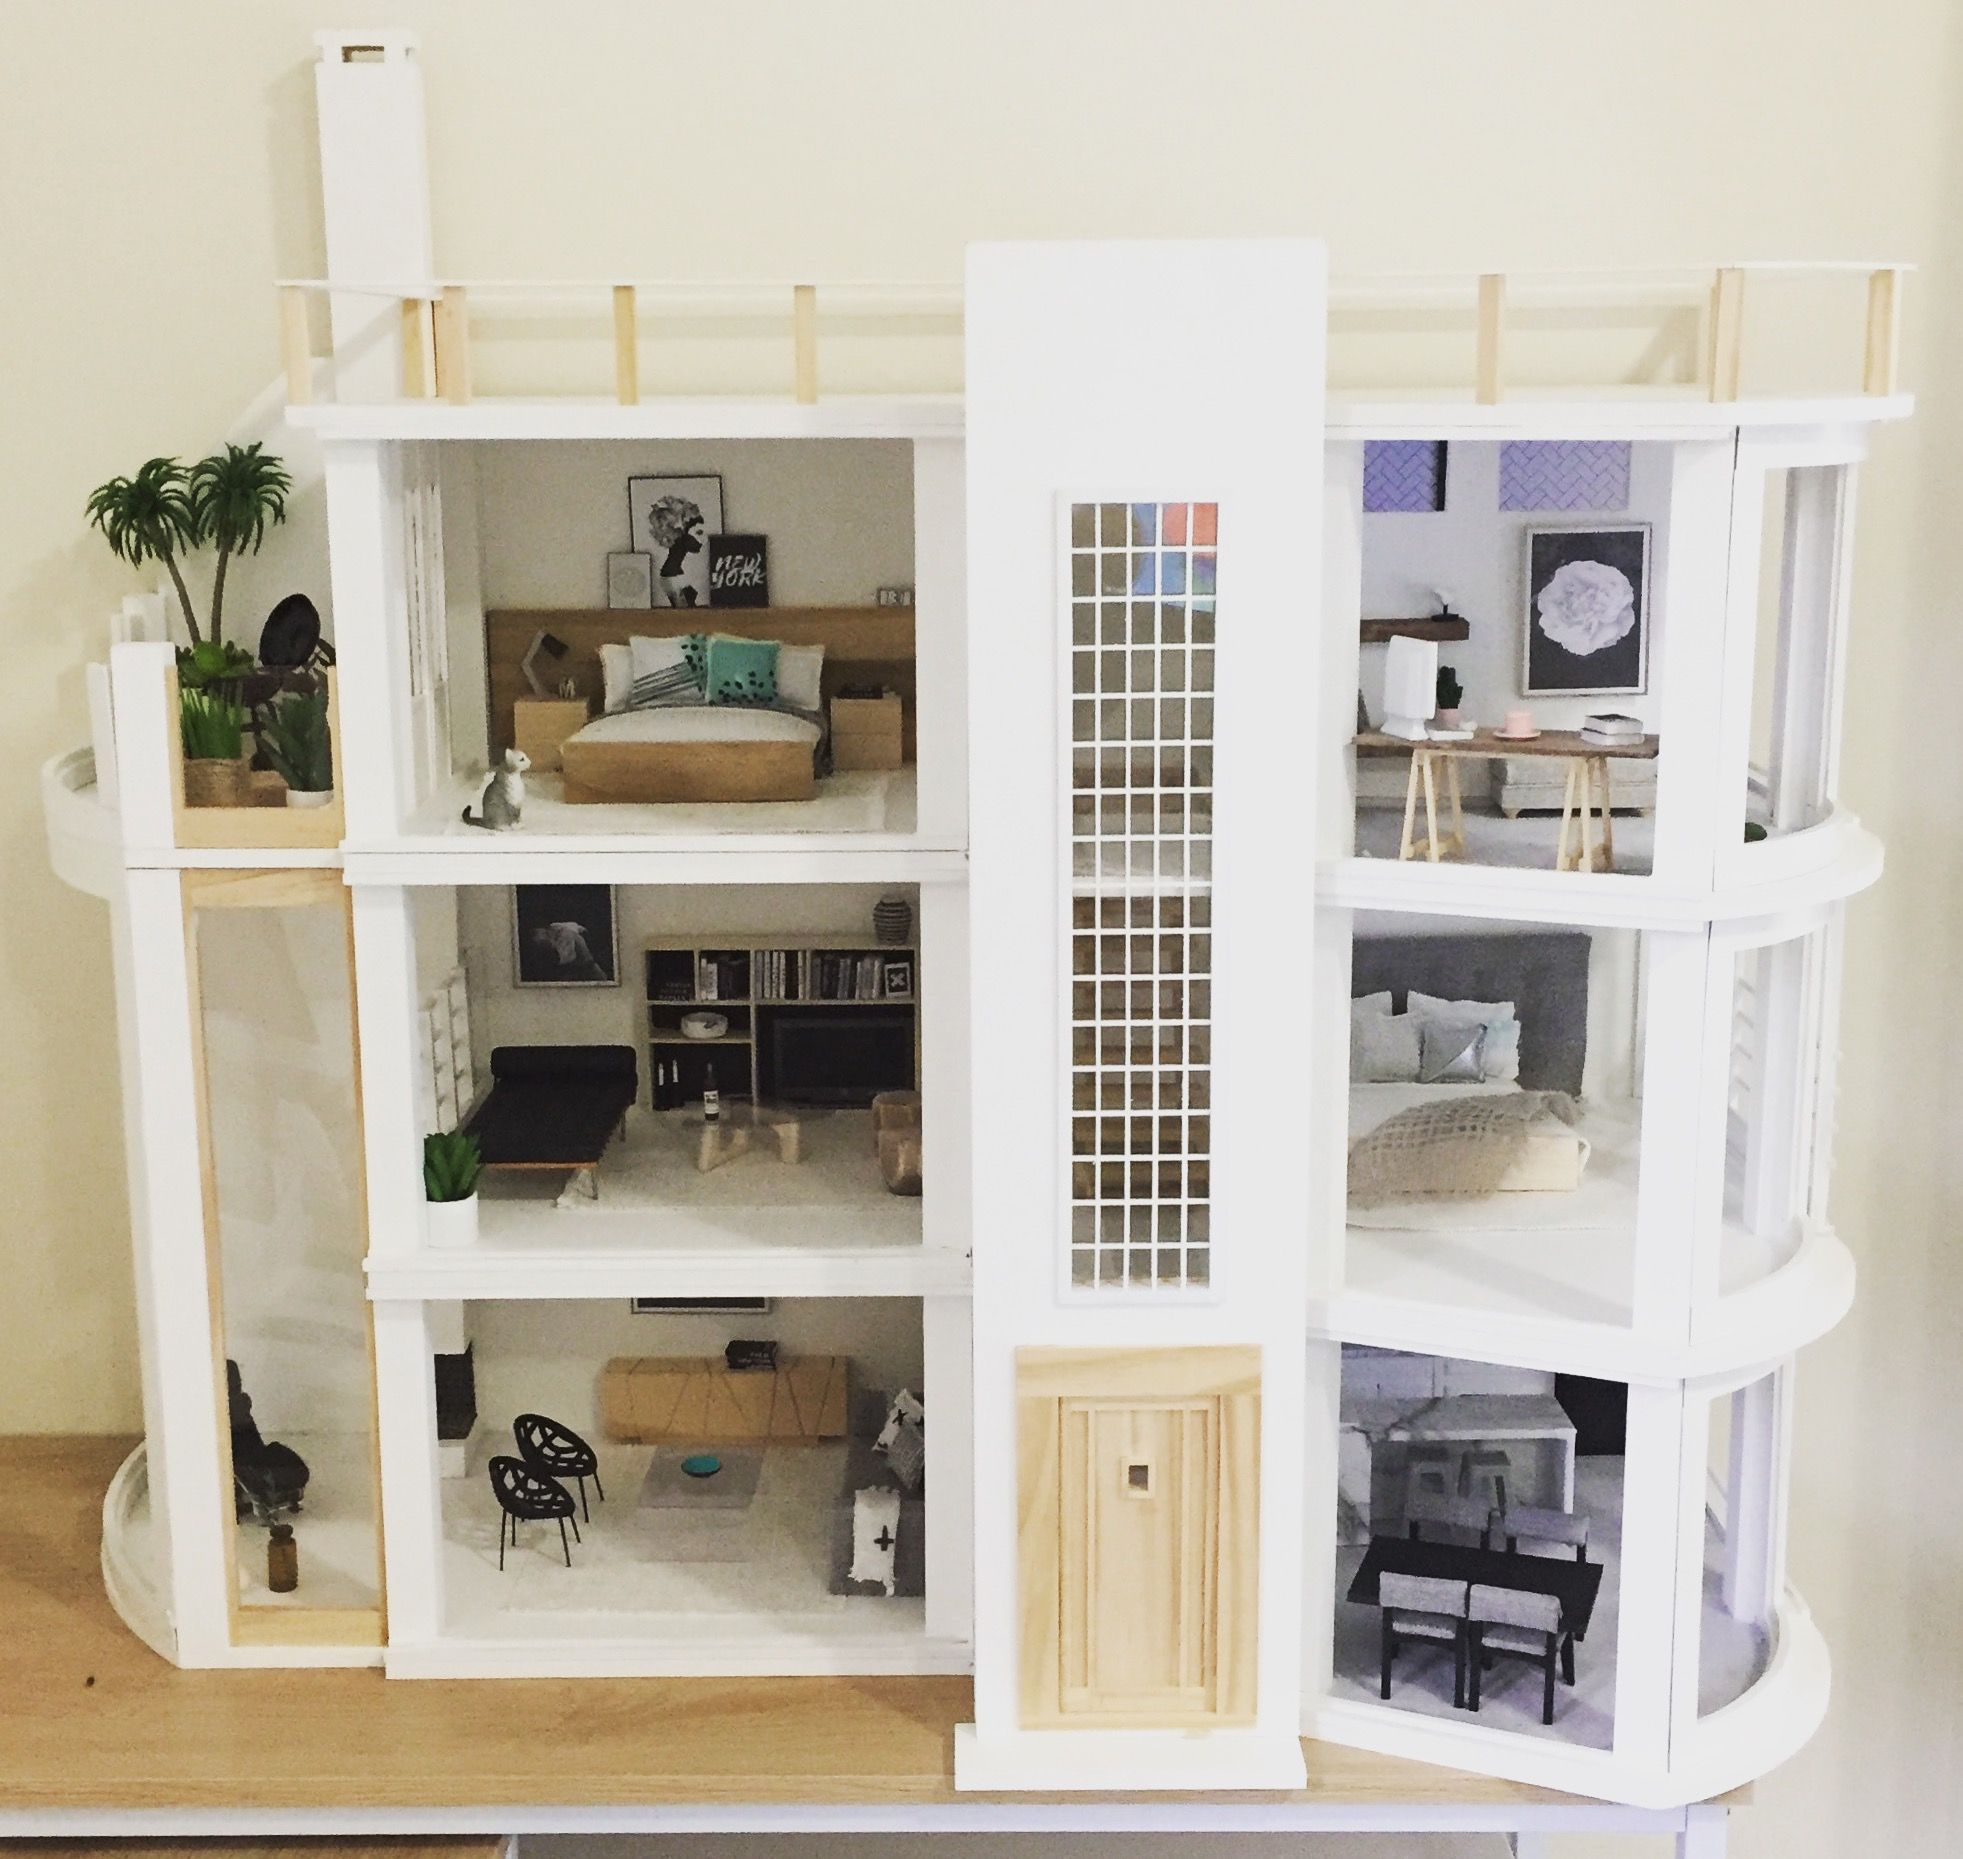 Modern Dollhouse By The Dollhouse Emporium Malibu Dollhouse Kit 1 12 Scale Miniatures Follow Onebrownbear On Instag Doll House Modern Dollhouse Dollhouse Kits